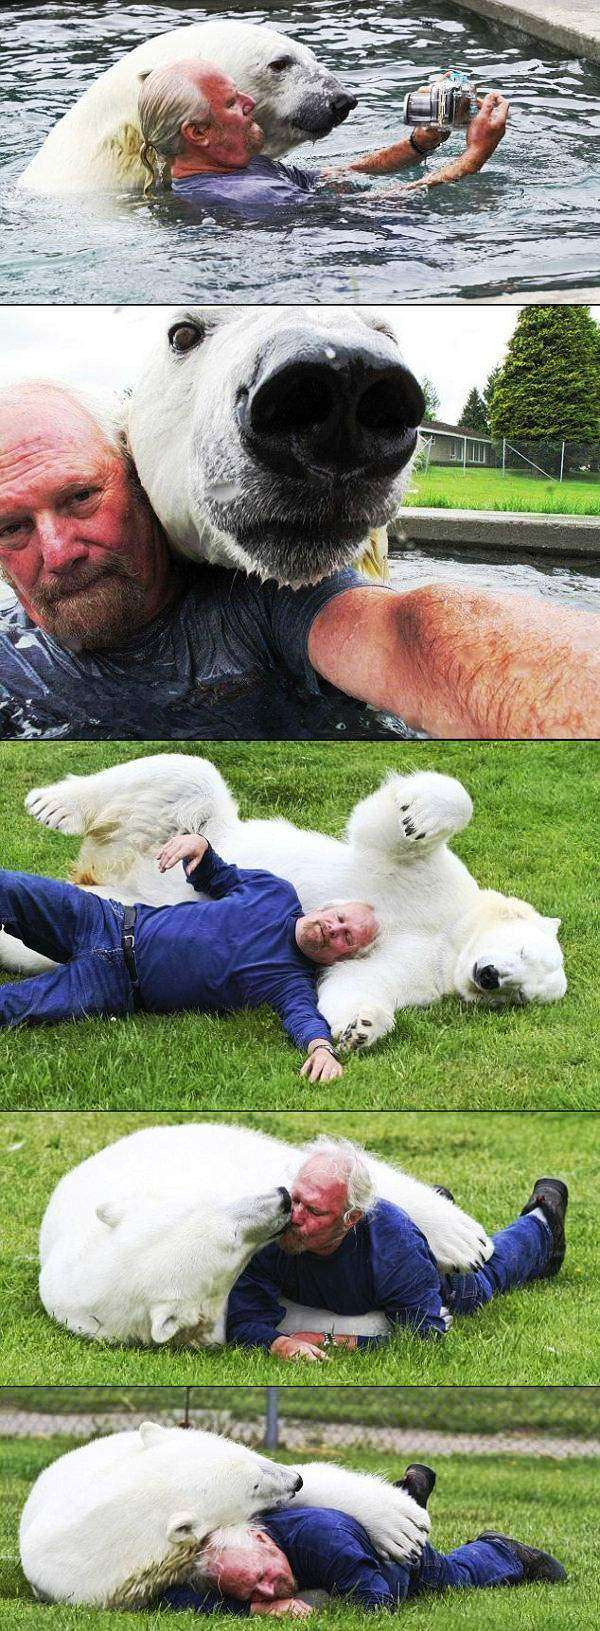 benefits polar bear zookeeper The Benefits Of Being A Polar Bear Zookeeper